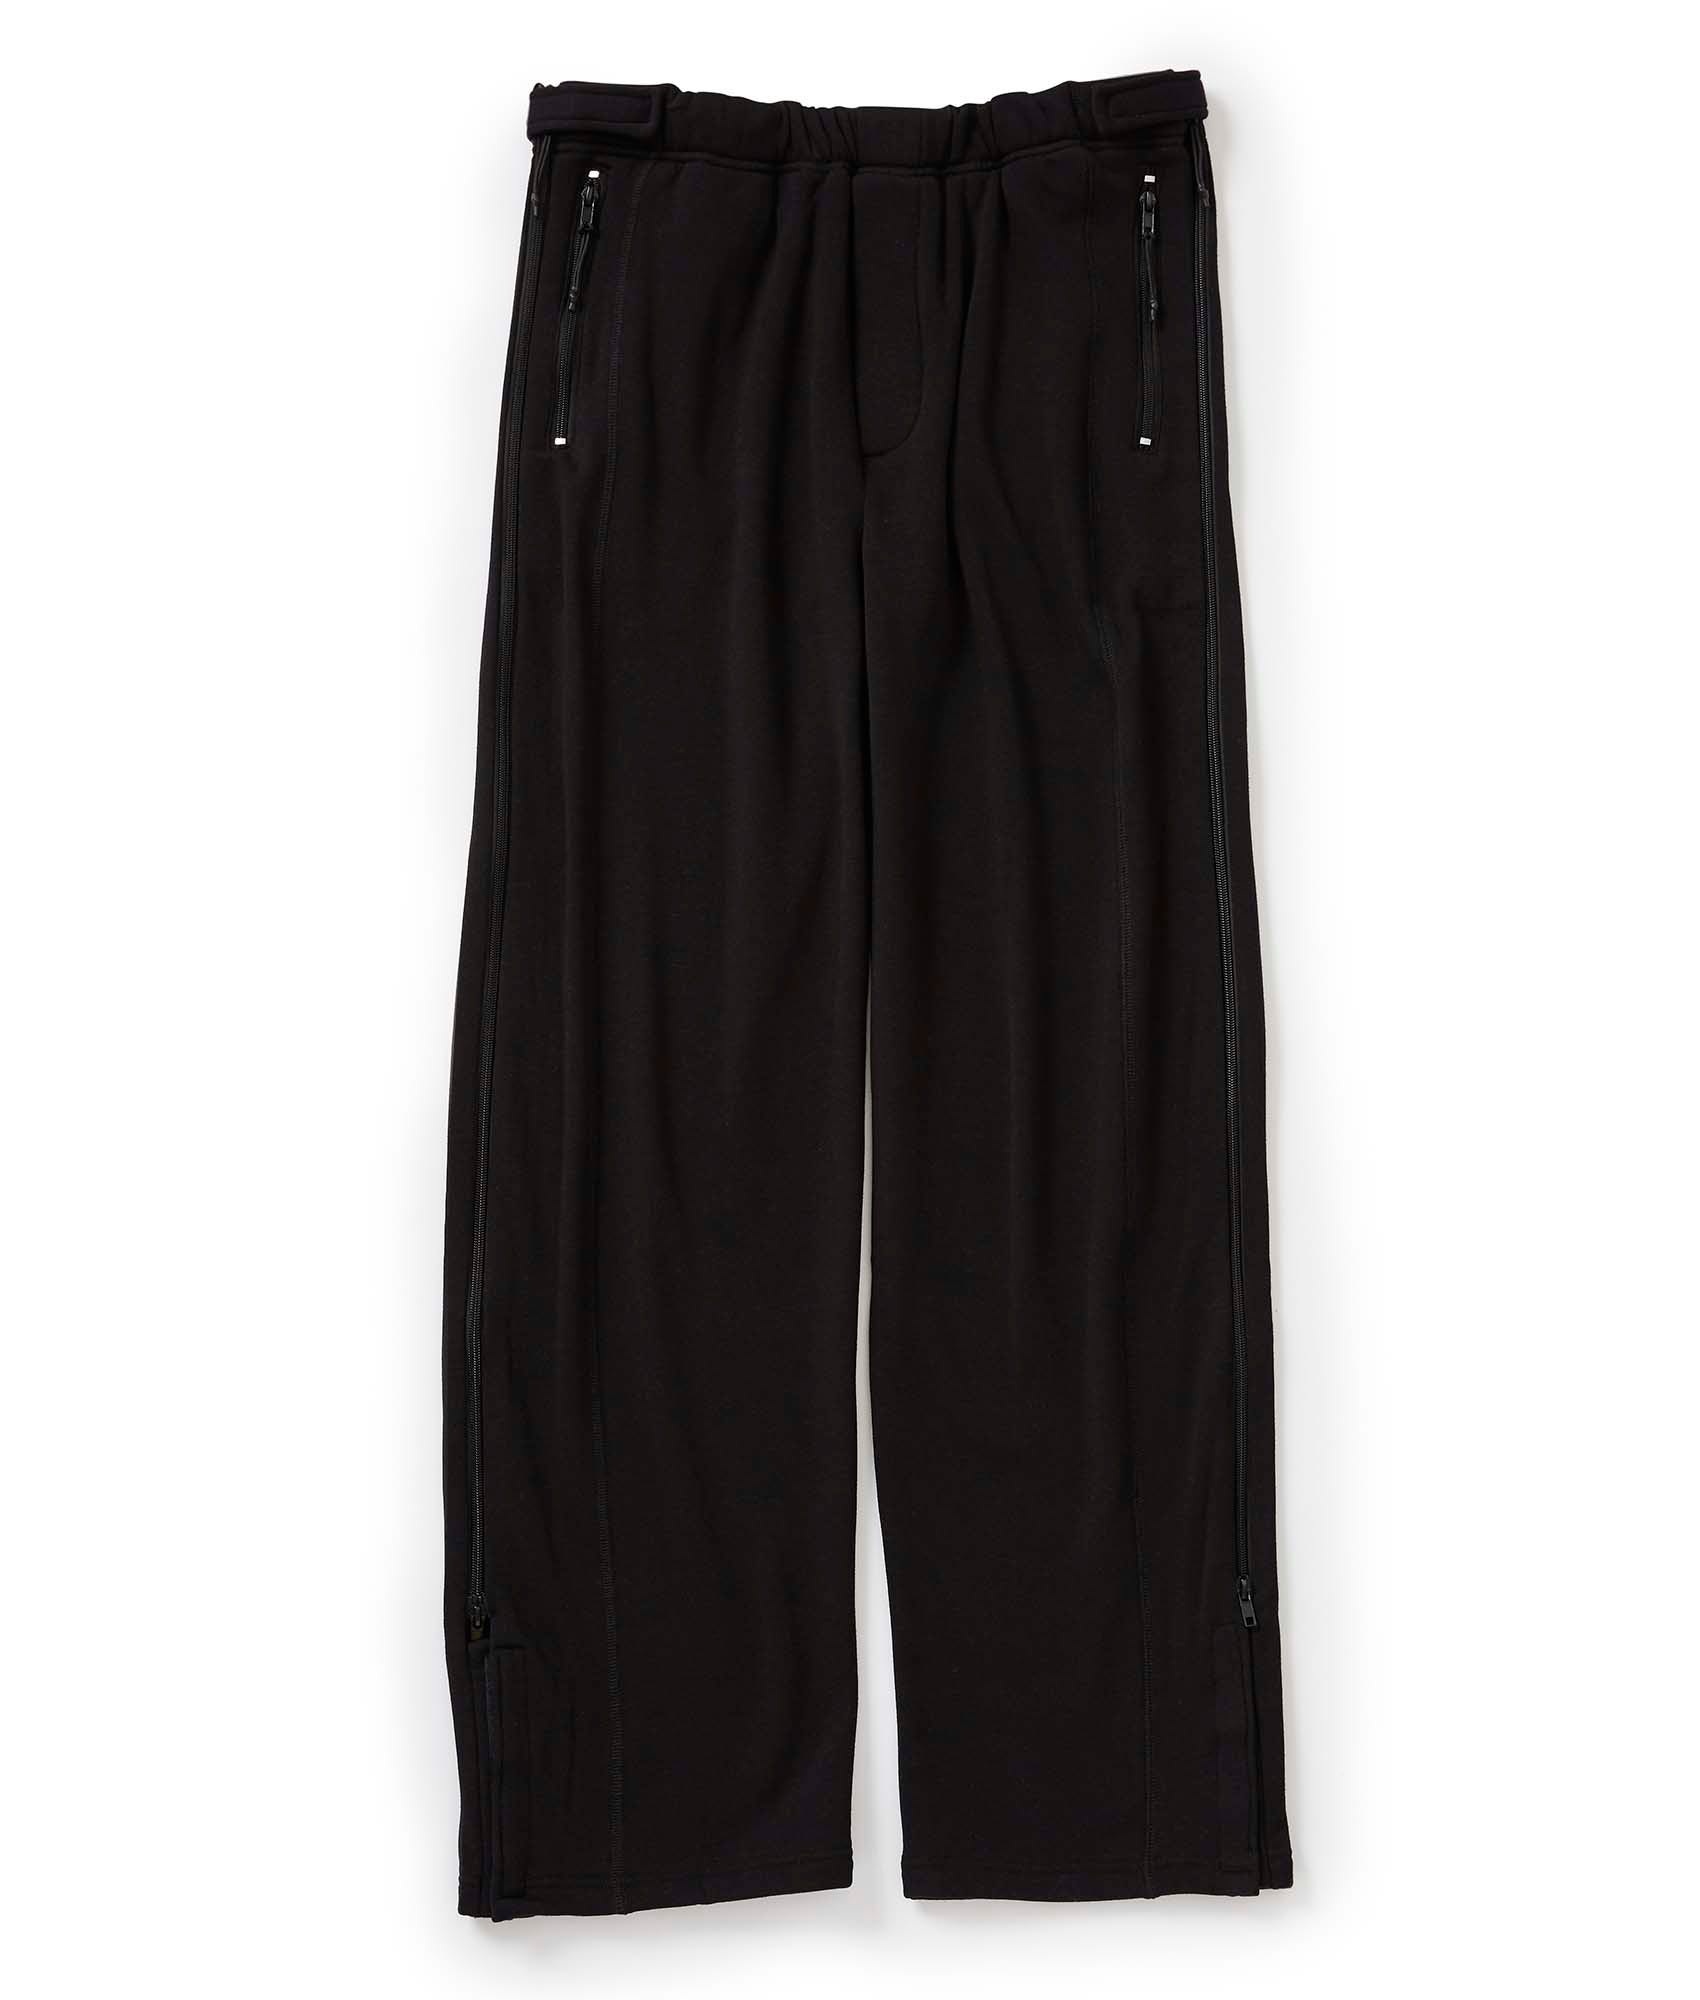 Men's Comfortable Tearaway Pants with Pockets (catheter pant)